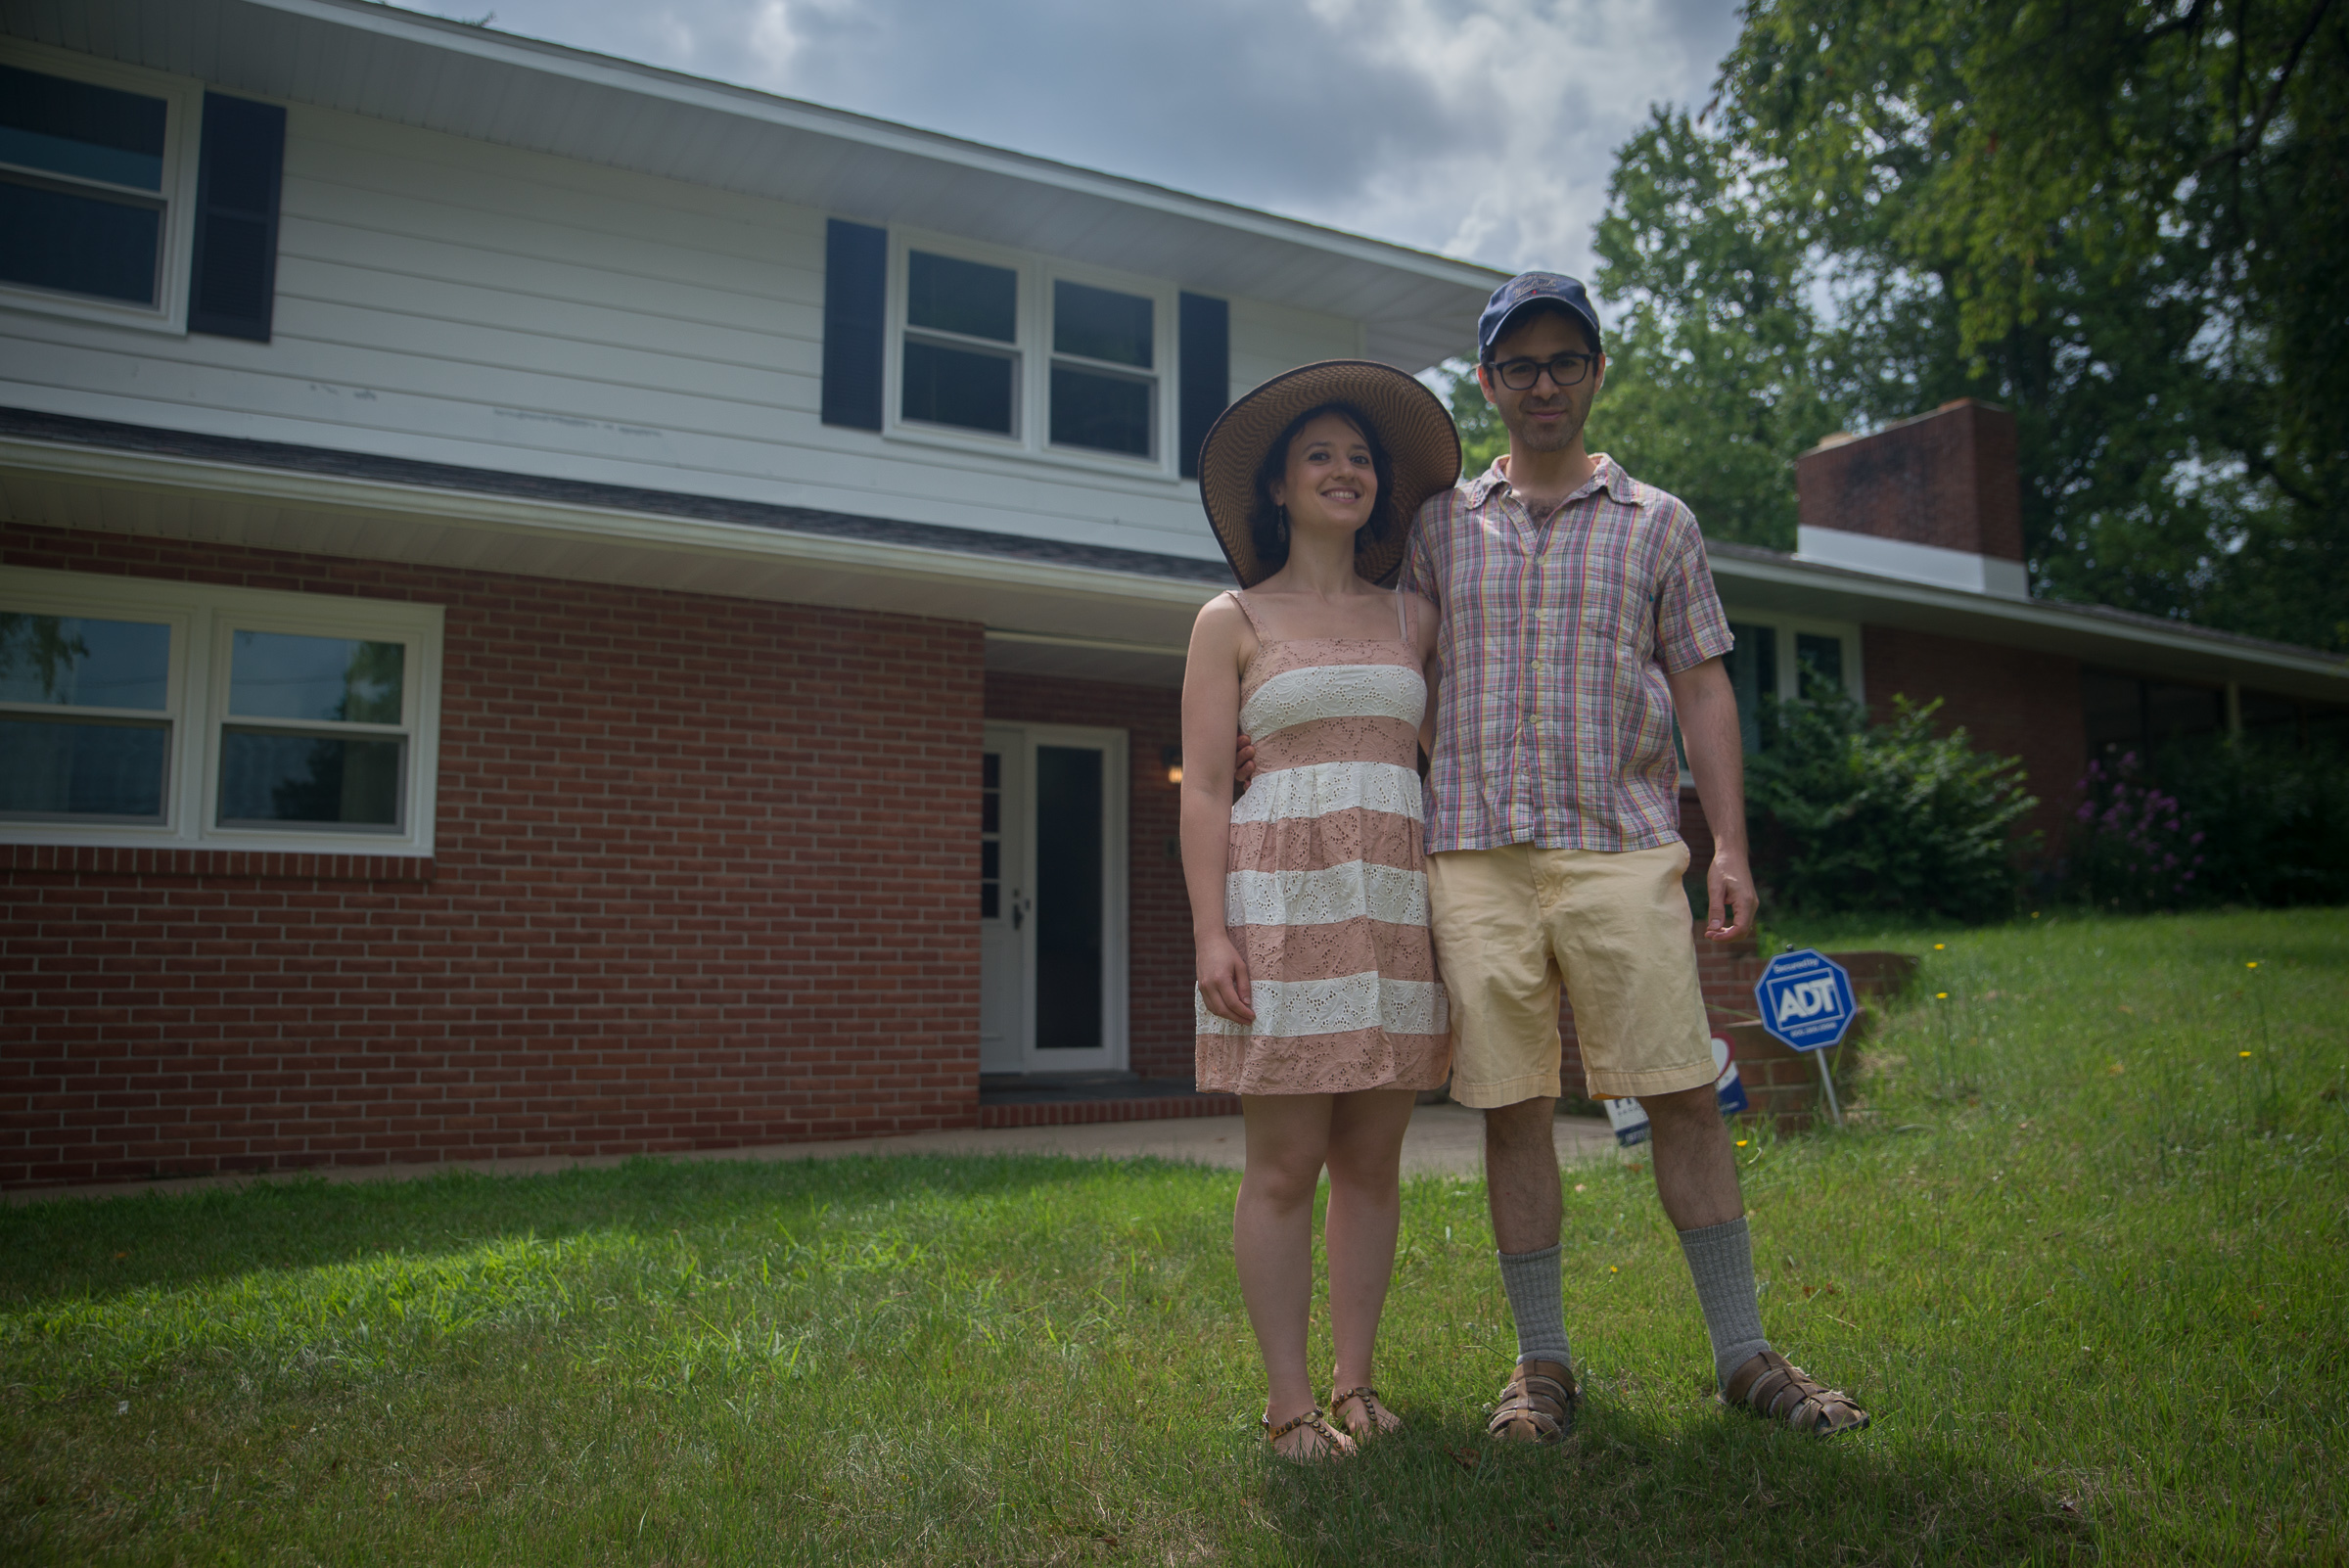 William and Malya Levin at the homestead of the Alliance Colony ´reboot´ in Pittsgrove, NJ. The house belonged to his grandparents.